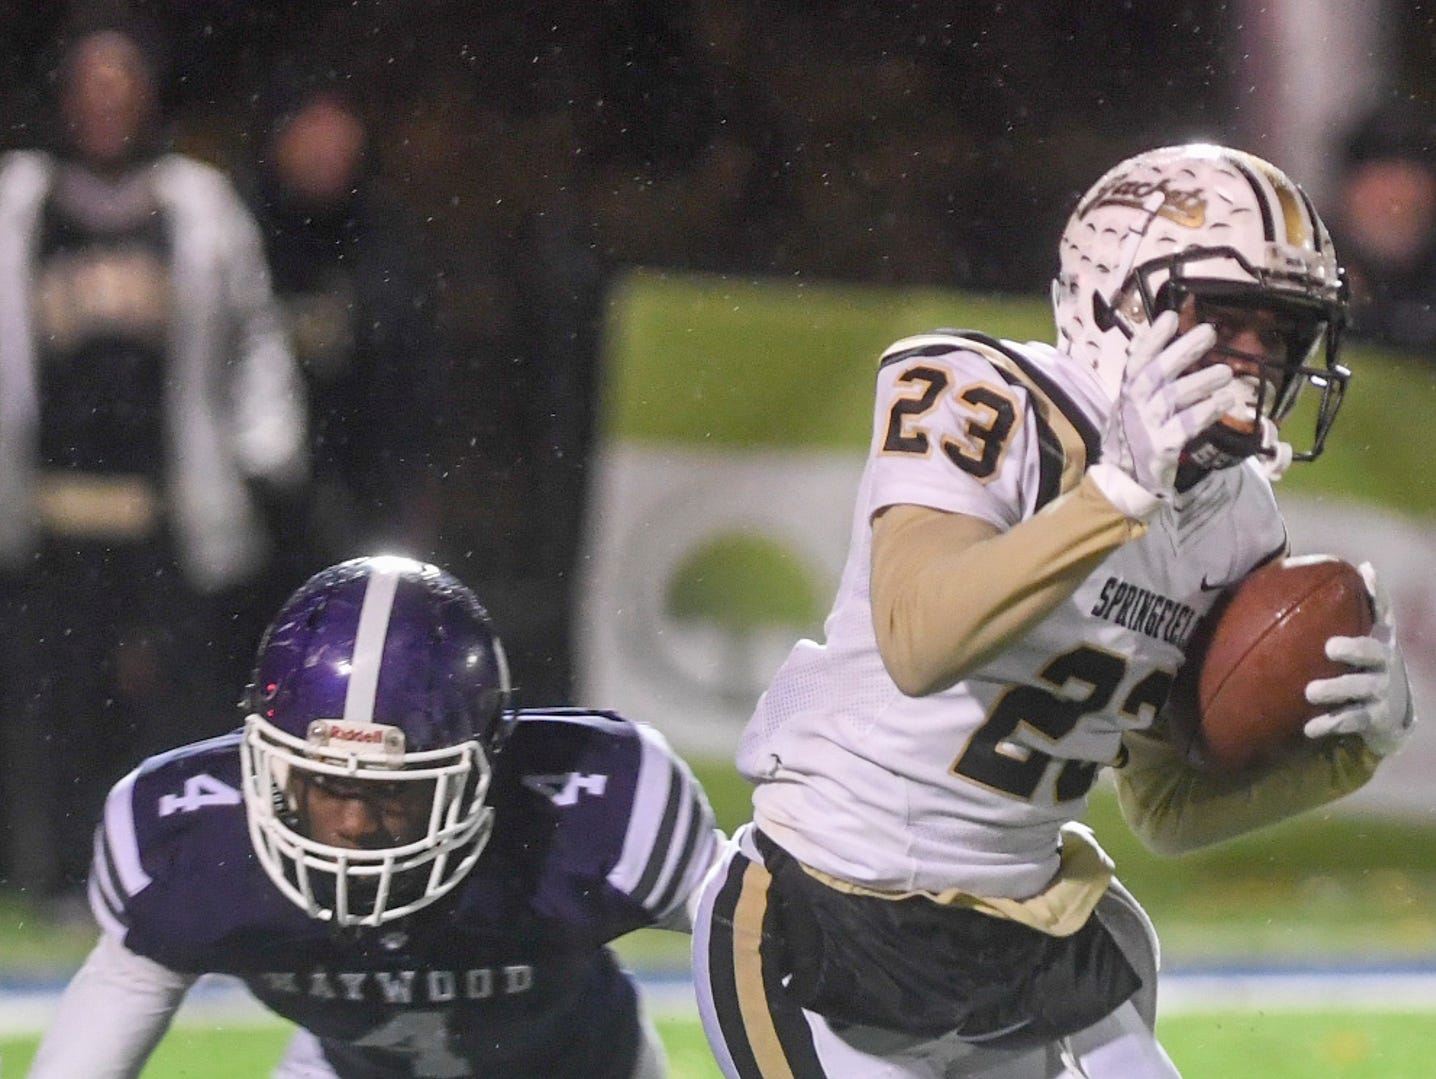 """Springfield's Dayron """"Fat Cat"""" Johnson shakes Haywood's Darion Williamson during their Class 4A semifinal game, Friday, November 23. Haywood defeated Springfield, 49-14."""